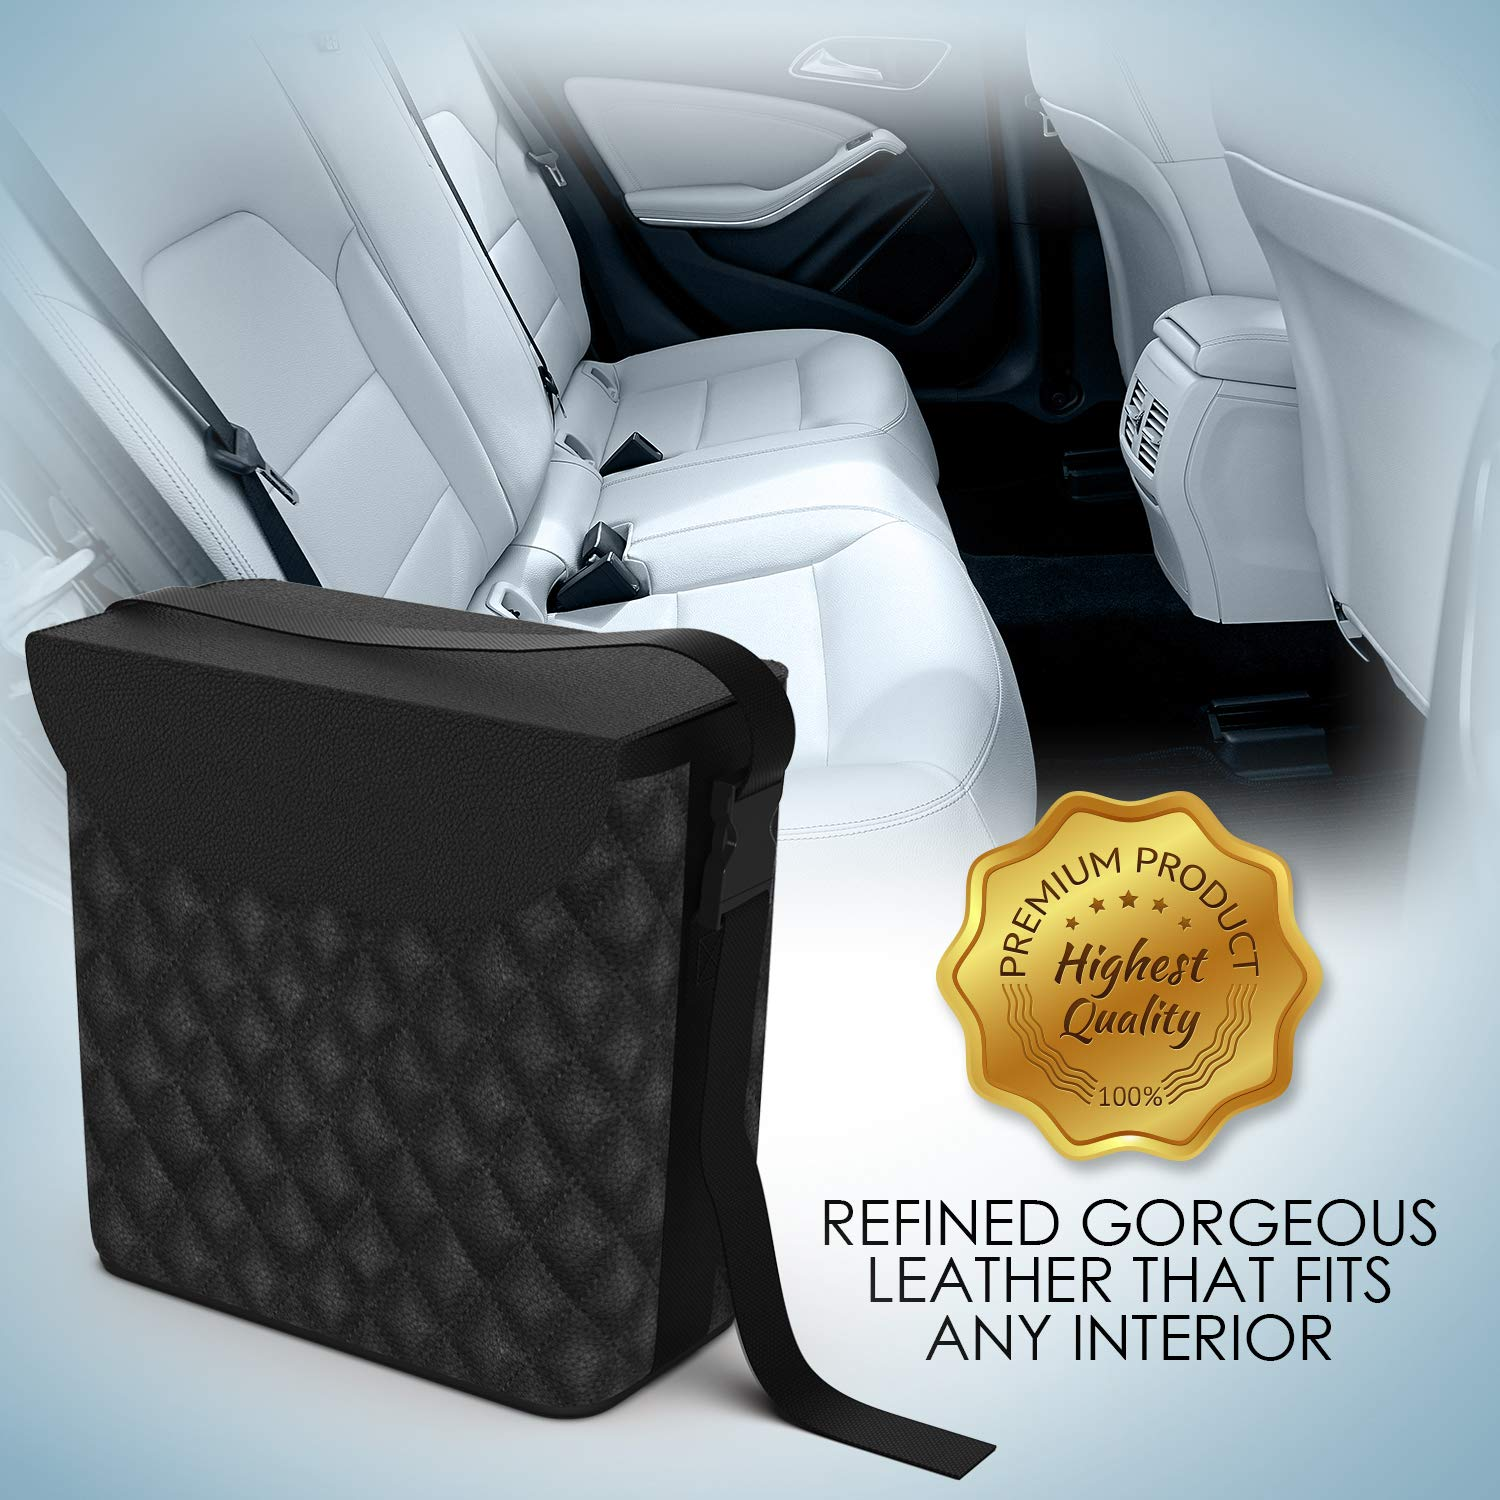 Car Garbage Can with Matching Tissue Box Luxxe Car Trashcan Refined Leather Car Trash Can Car Trash Bag Machine Washable Car Trash Container Water Proof Car Garbage Bag /& Car Trash Bin/…